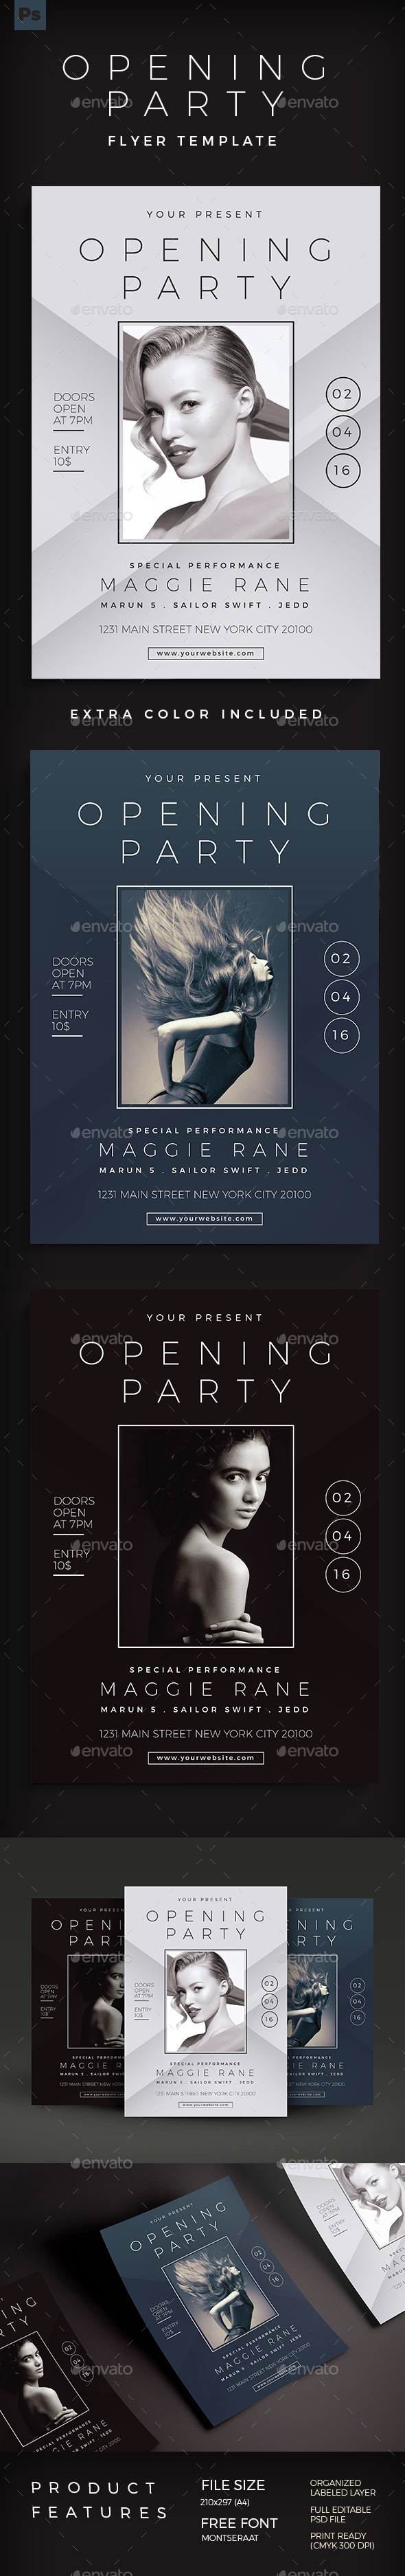 Opening Party Flyer - Events Flyers